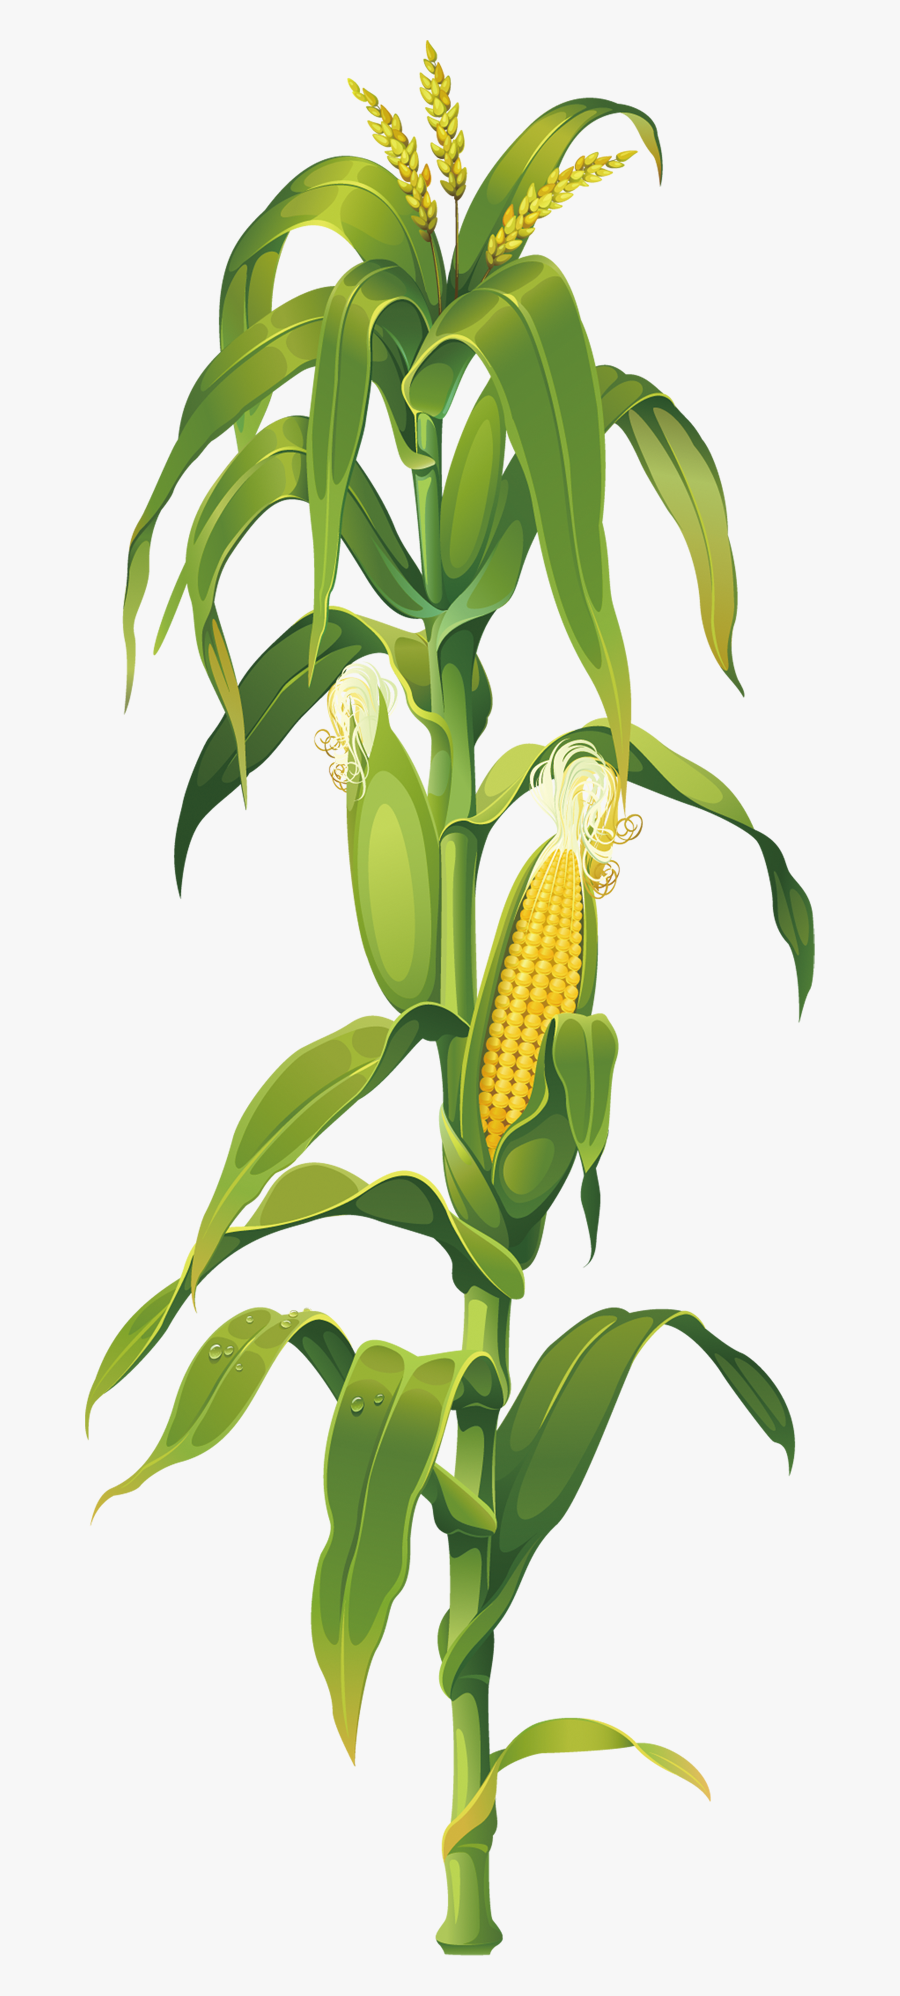 Maize Plant On Corn Cob The Drawing Clipart.